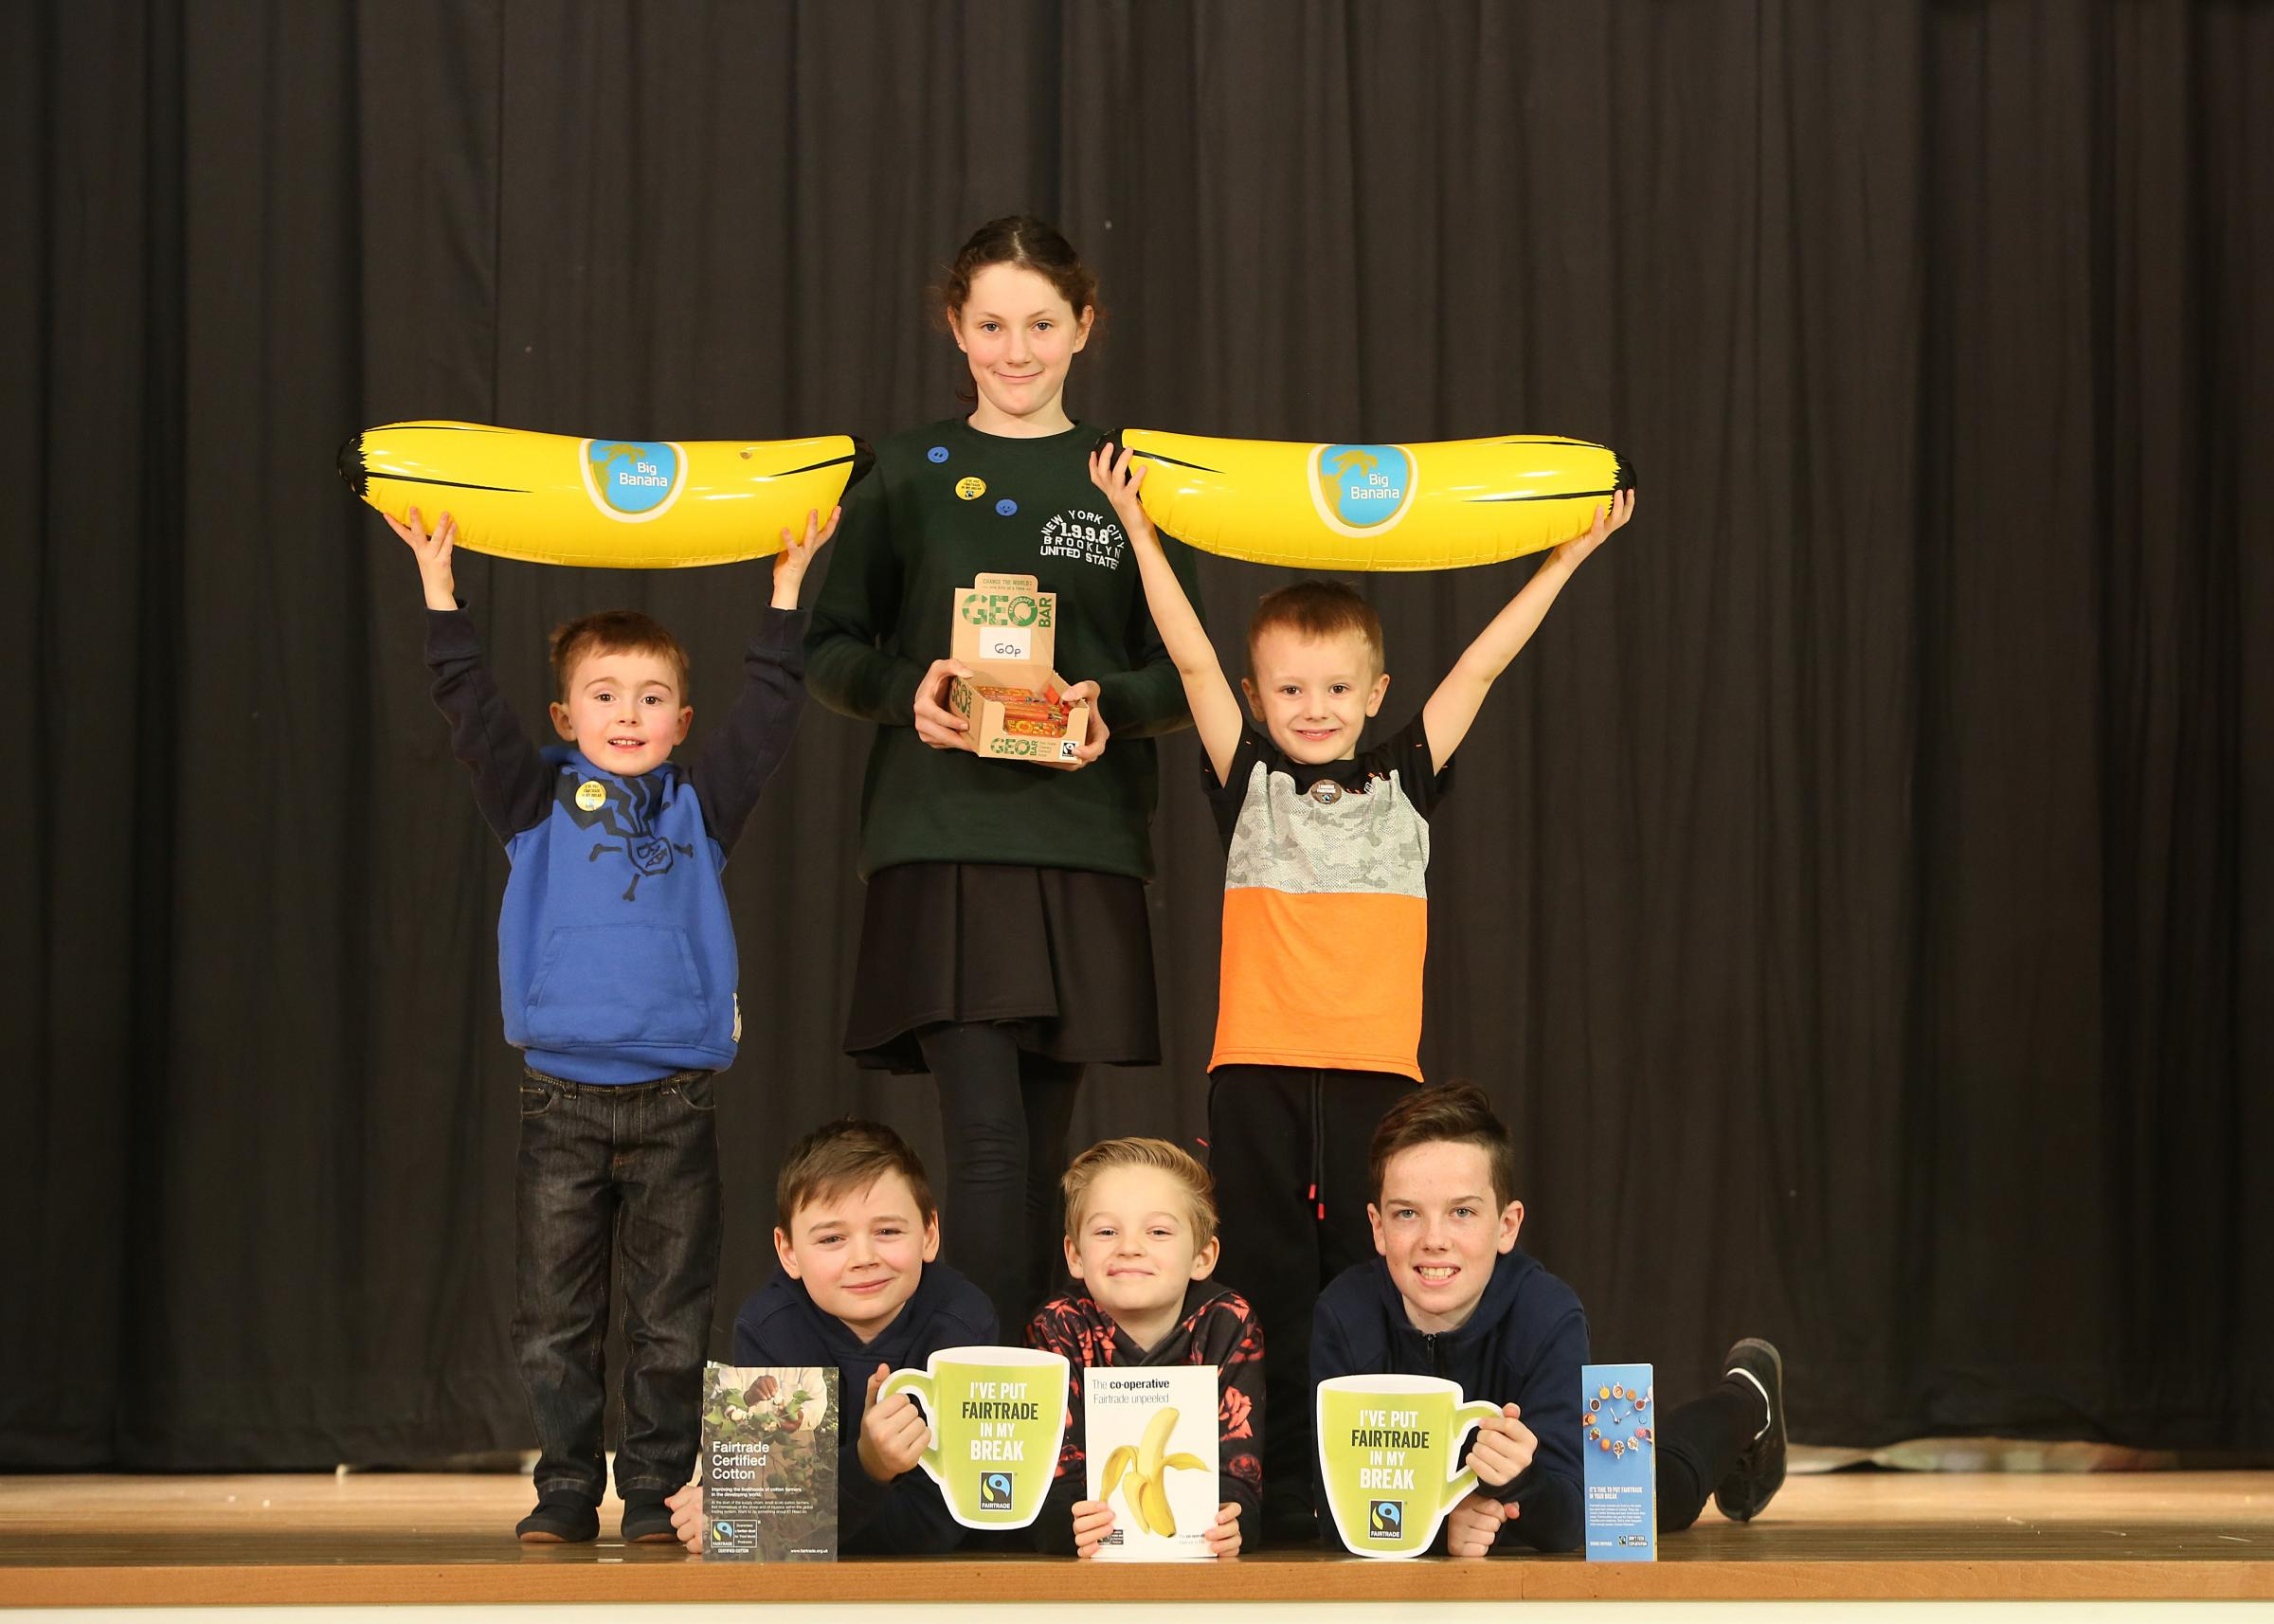 Some of the school's Fairtrade Committee members: Calum Gardiner P1, Evan Calvin P1, Abby Colley P7, Max Jaskiewicz P7, Louis Meikle P7 and Conor Monteith p7. Photo: Helen Barrington